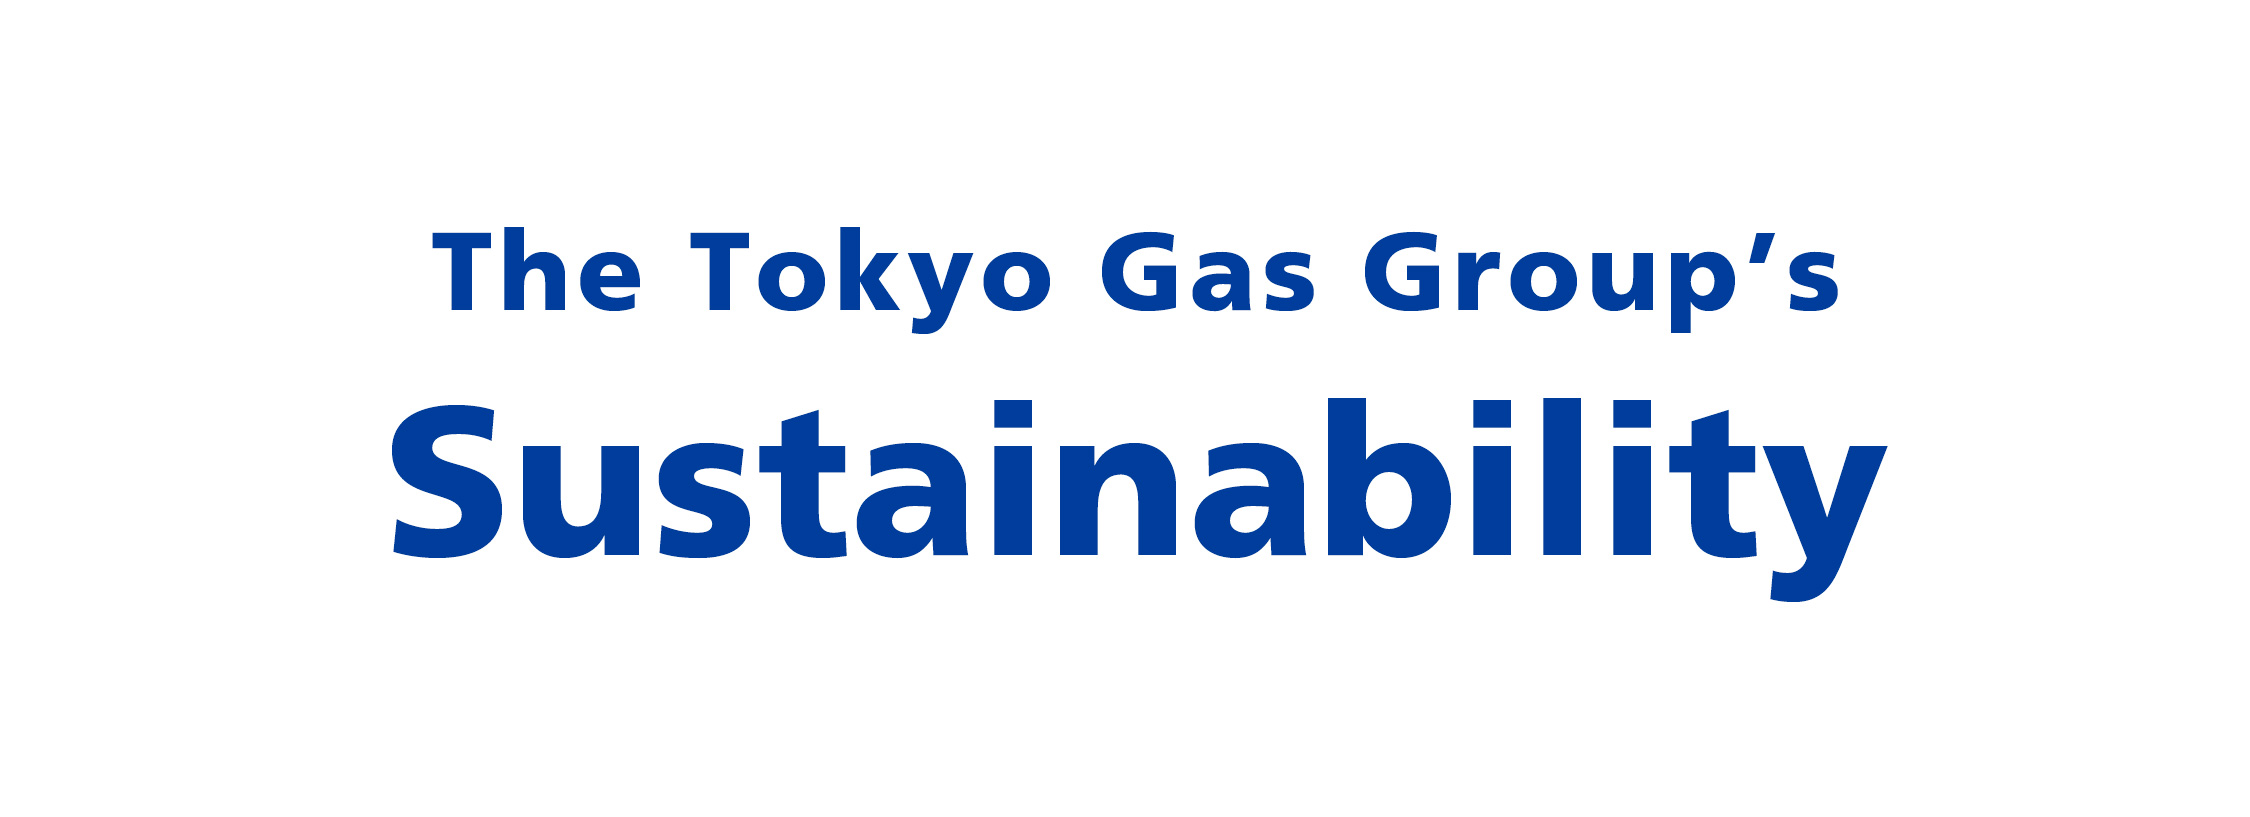 The Tokyo Gas Group's Sustainability